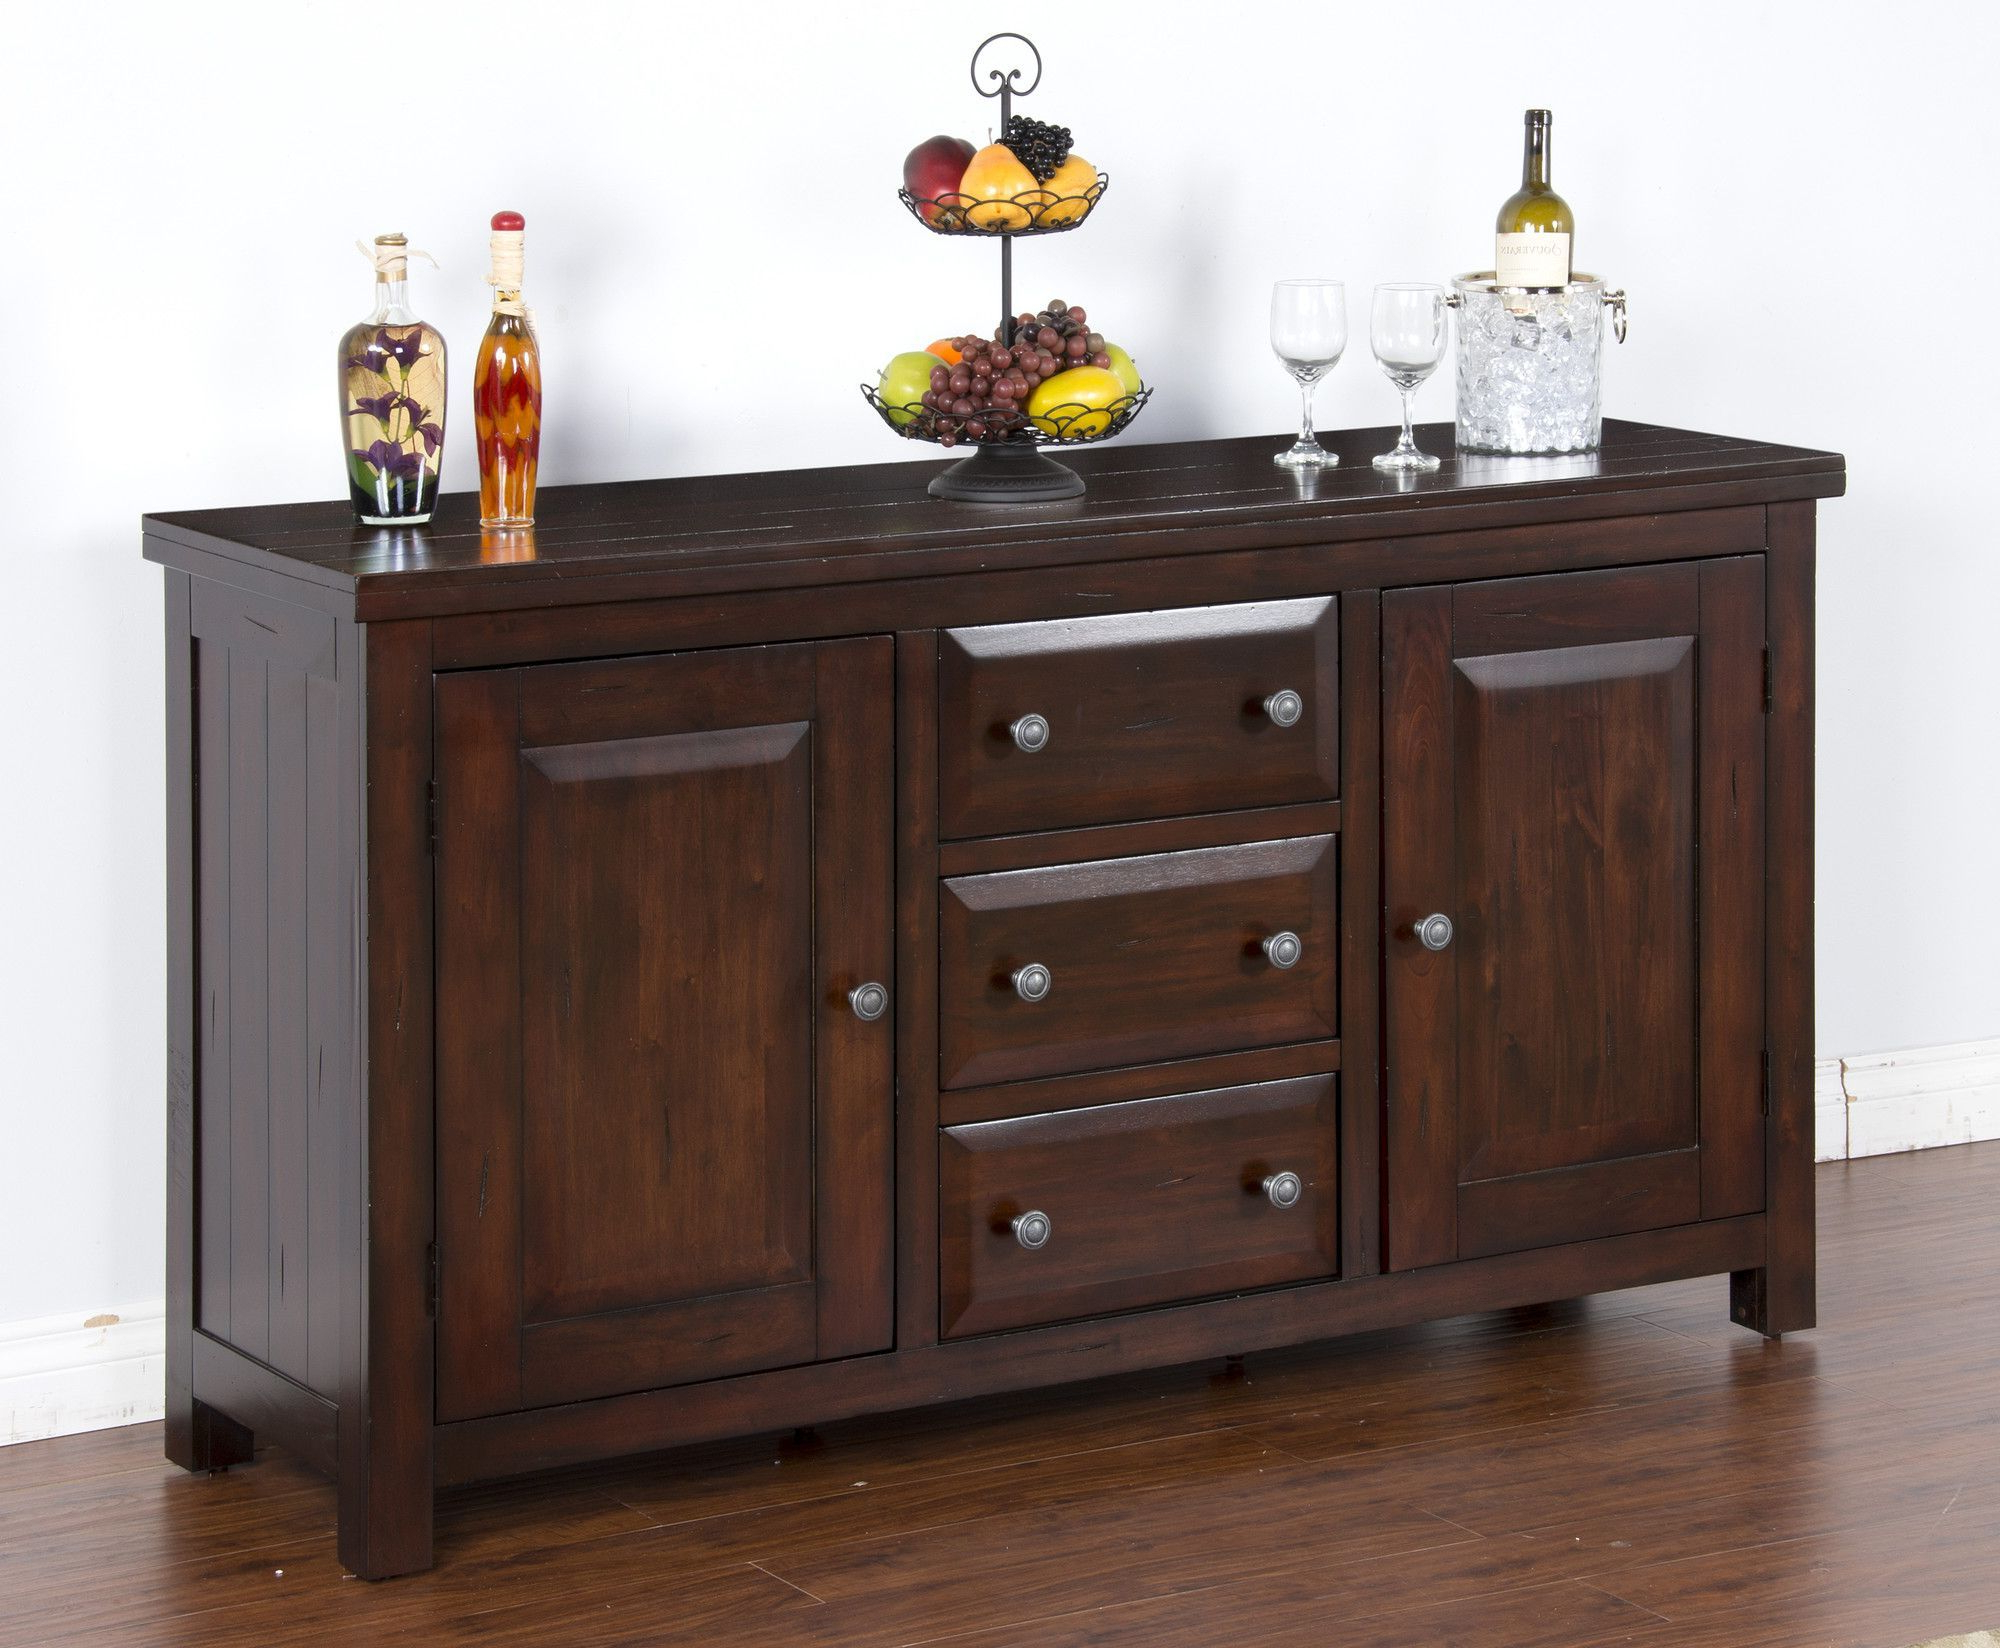 2020 Seiling Sideboards Throughout Buffet (Gallery 12 of 20)